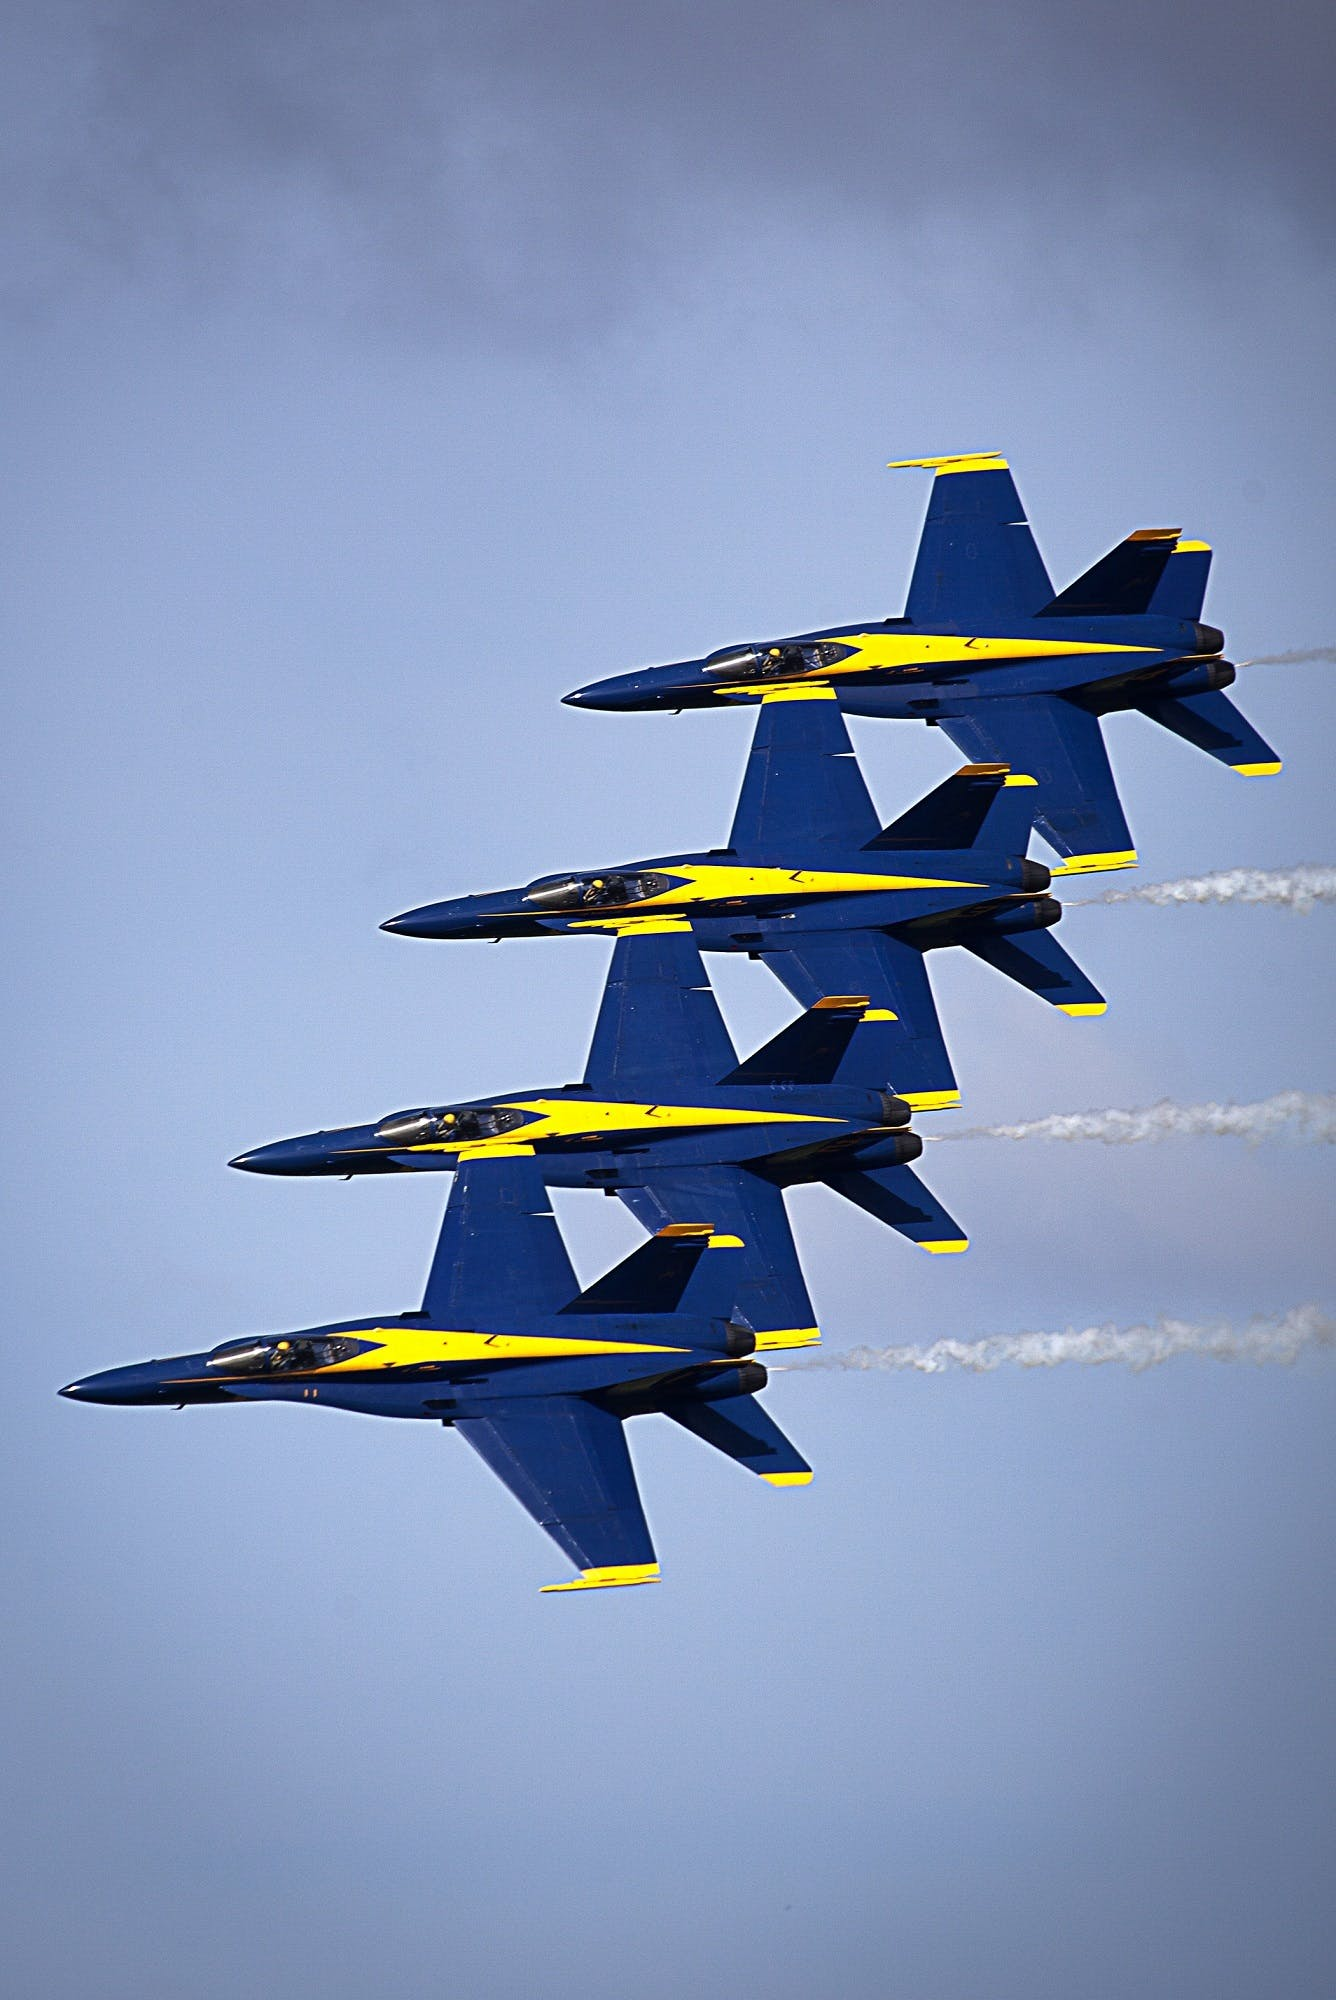 Four Blue-and-yellow Fighter Planes at the Sky